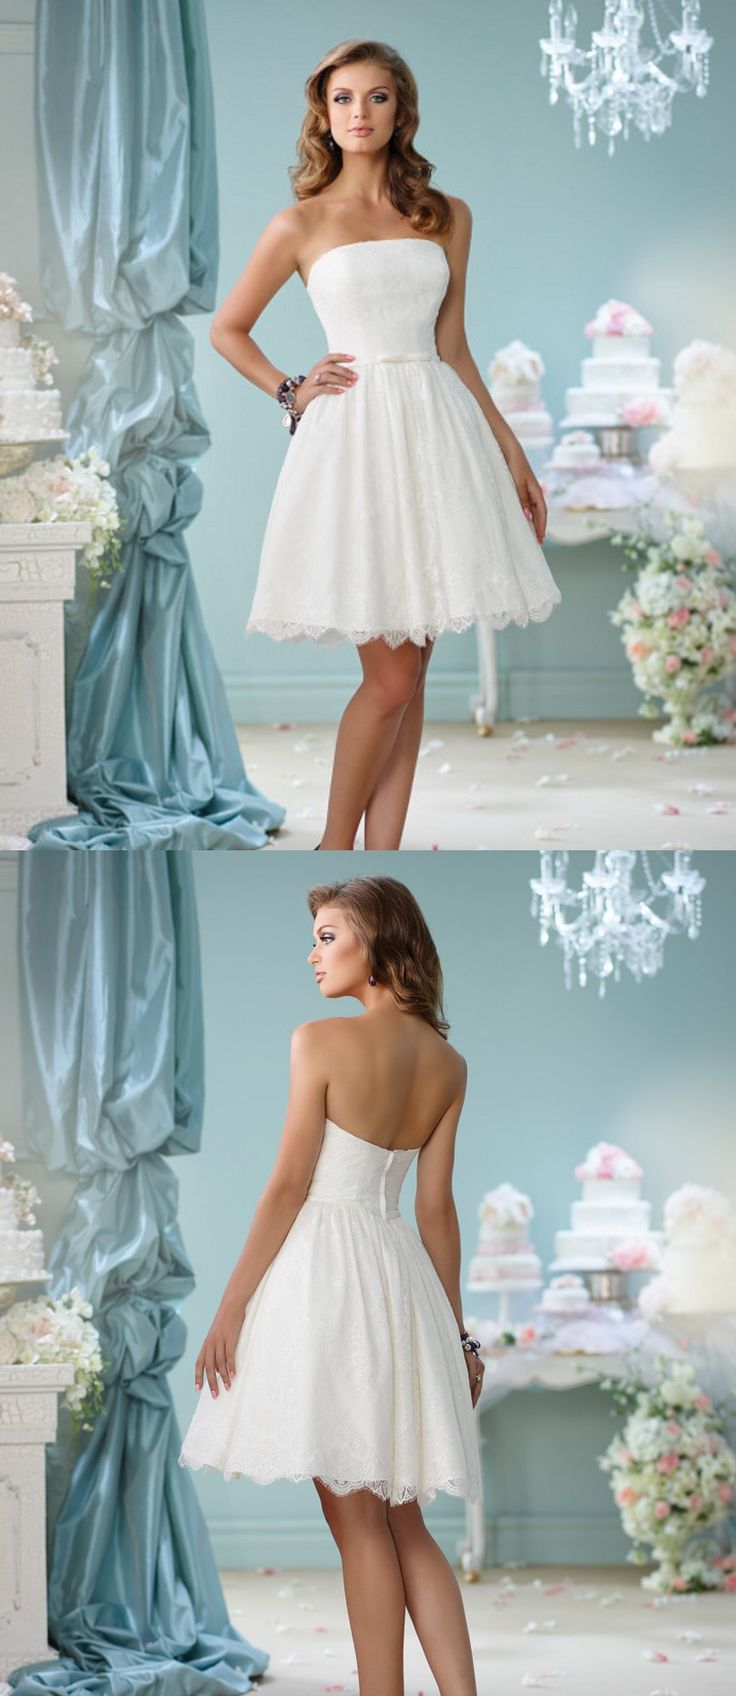 40 best short wedding dresses images on Pinterest | Short wedding ...